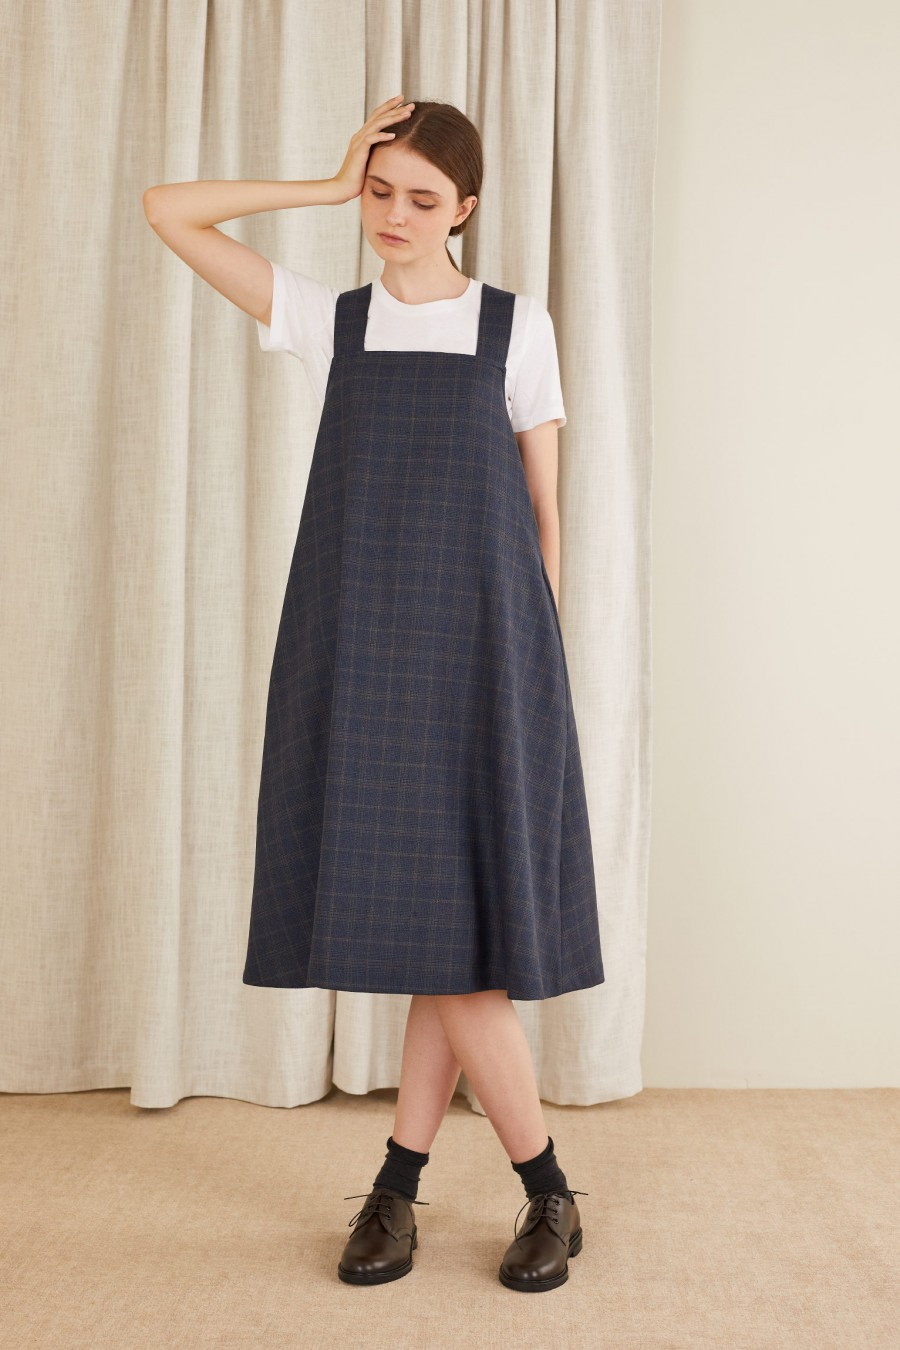 pinafore dress in autumn colors